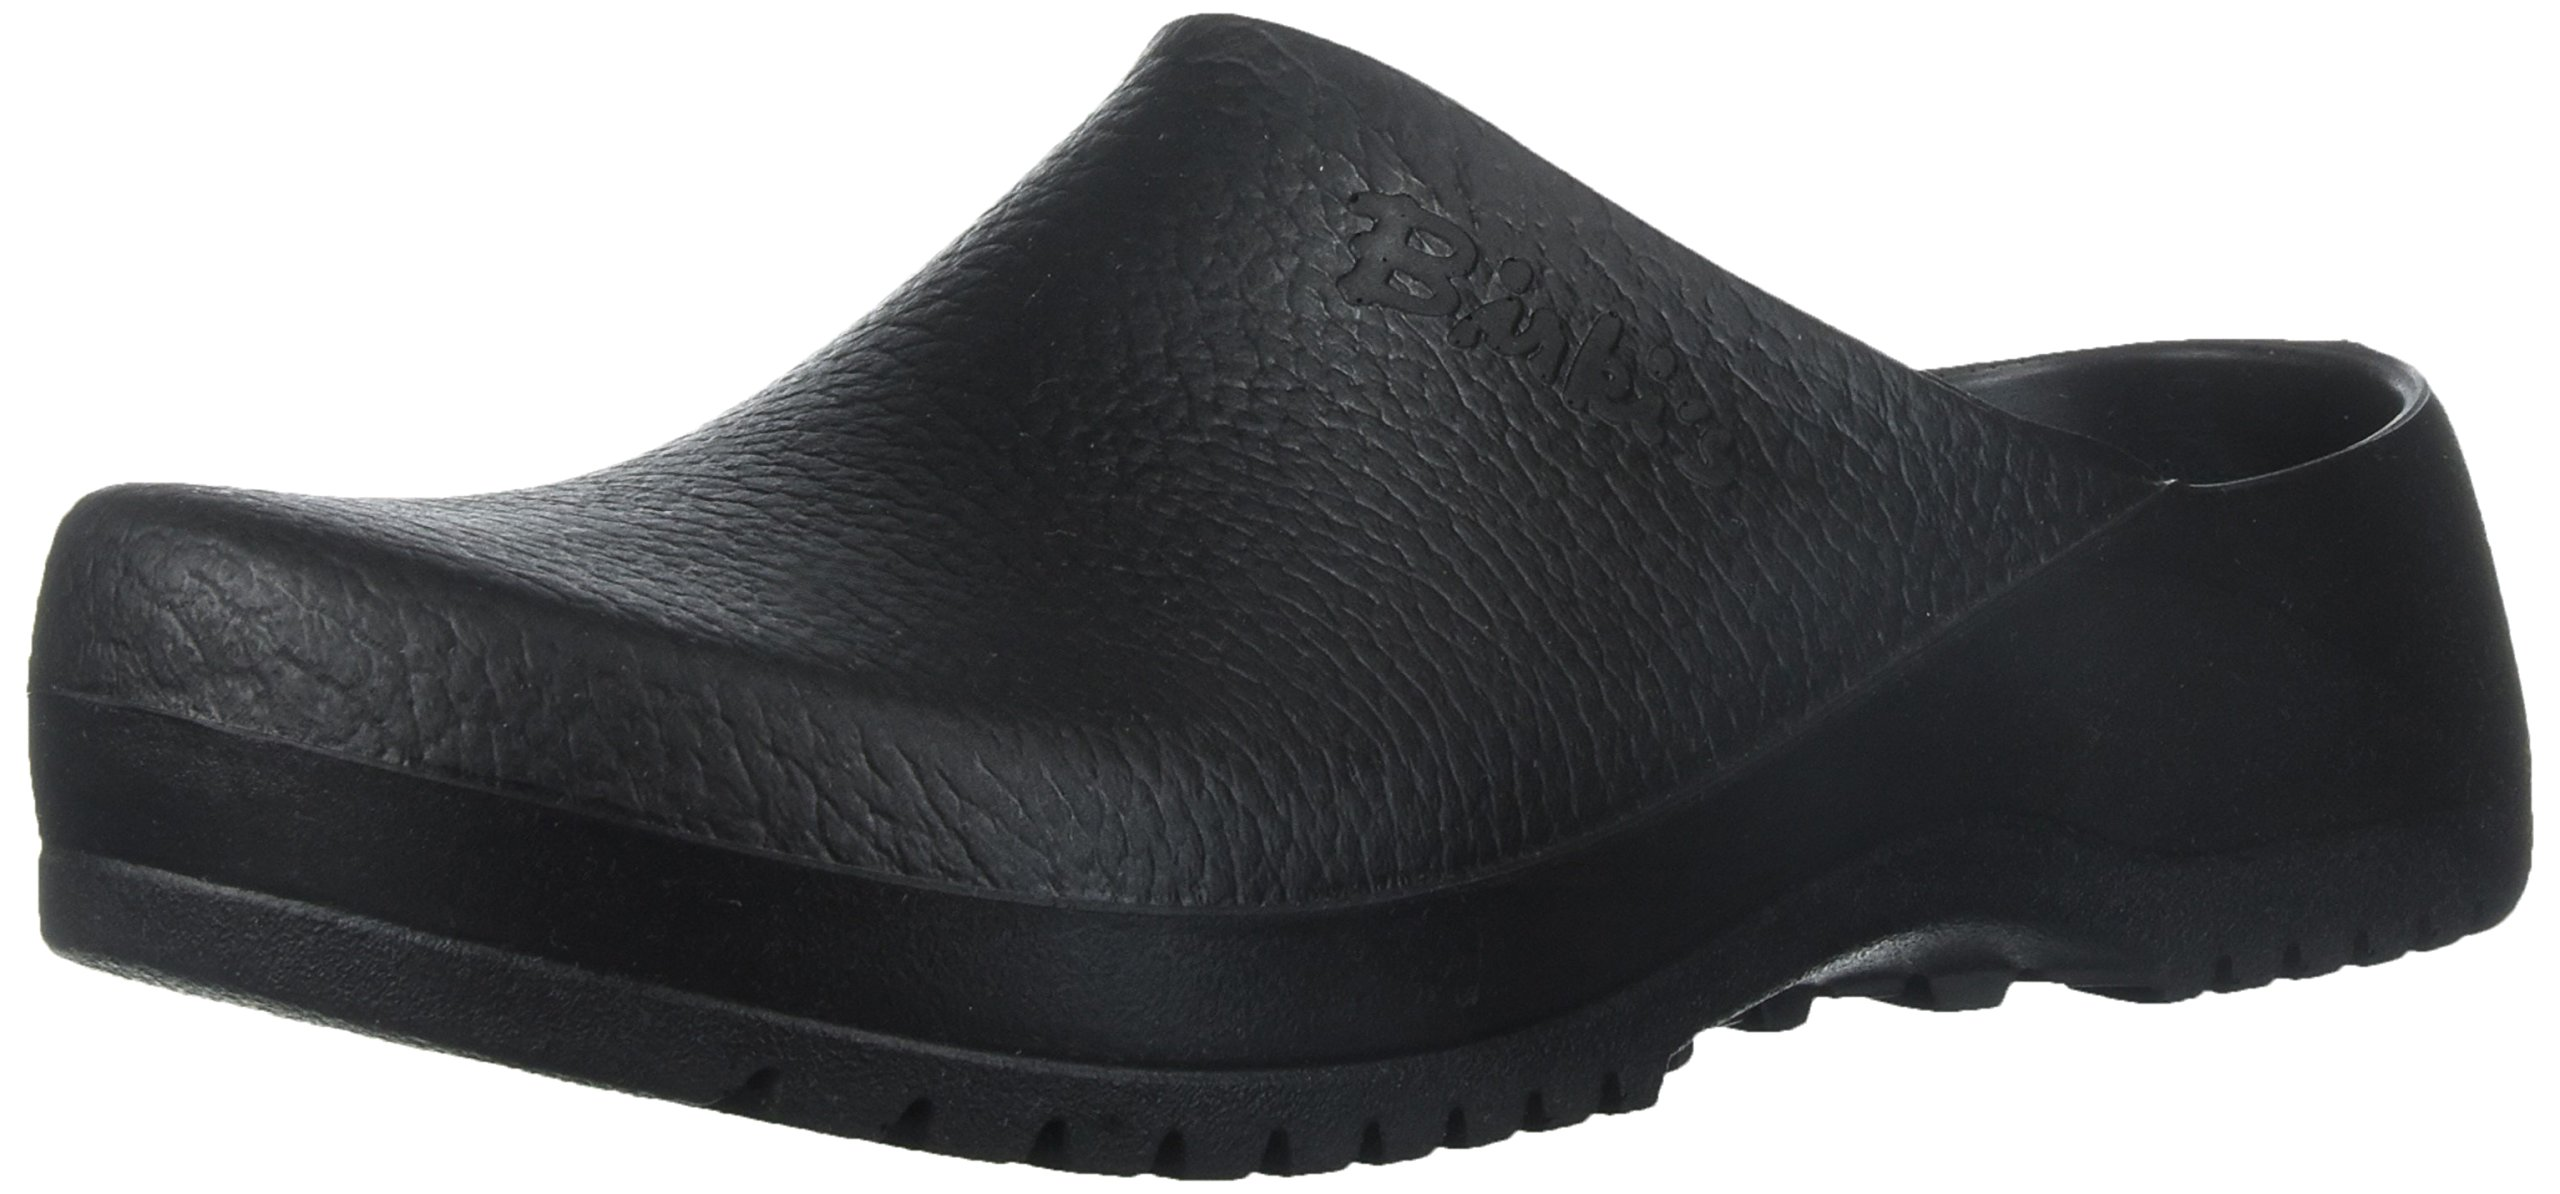 Birkenstock womens in Black from Polyurethane Synthetic-Clogs 38.0 EU W